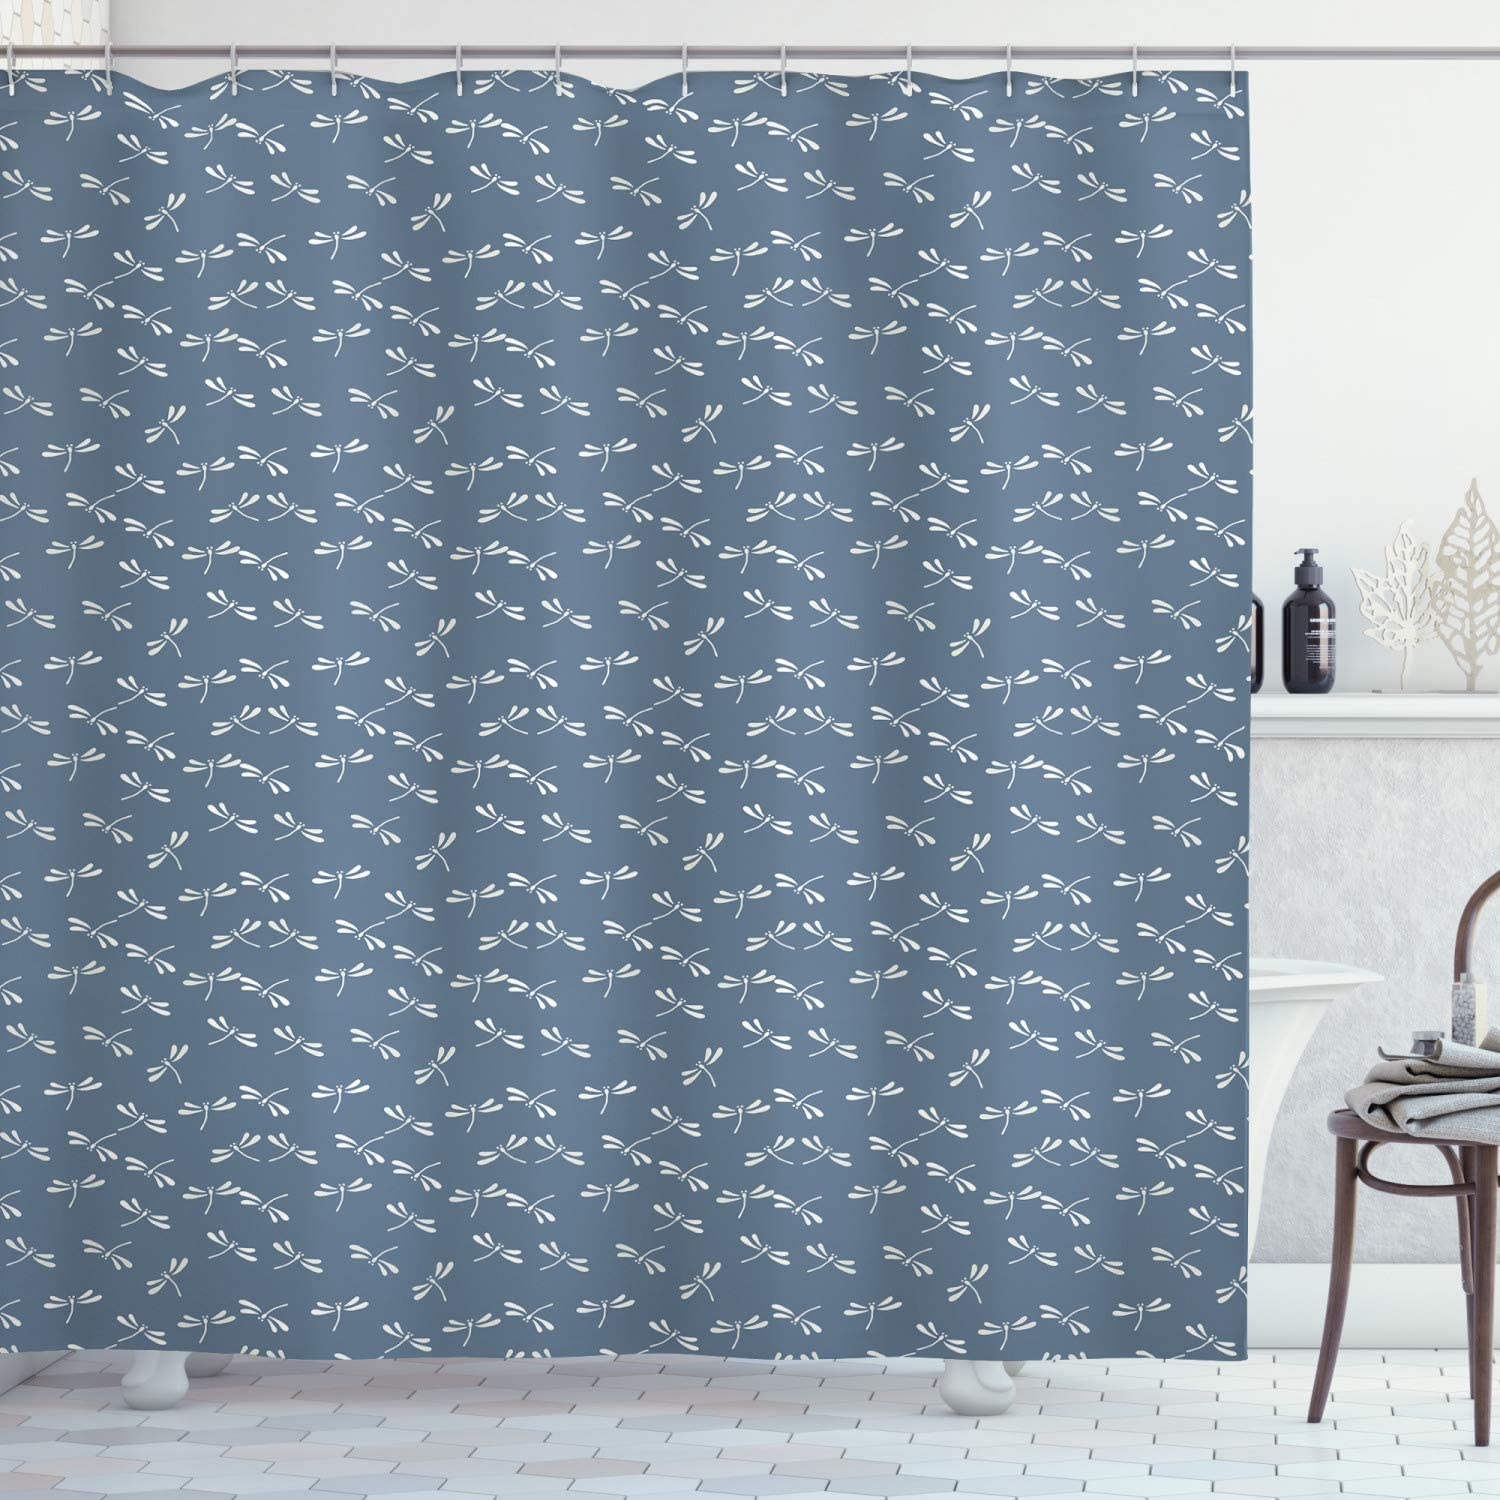 """Ambesonne Dragonfly Shower Curtain, Tropical Wildlife Pattern Japanese Style Oriental Nature Inspired Pattern, Cloth Fabric Bathroom Decor Set with Hooks, 70"""" Long, Slate Blue"""